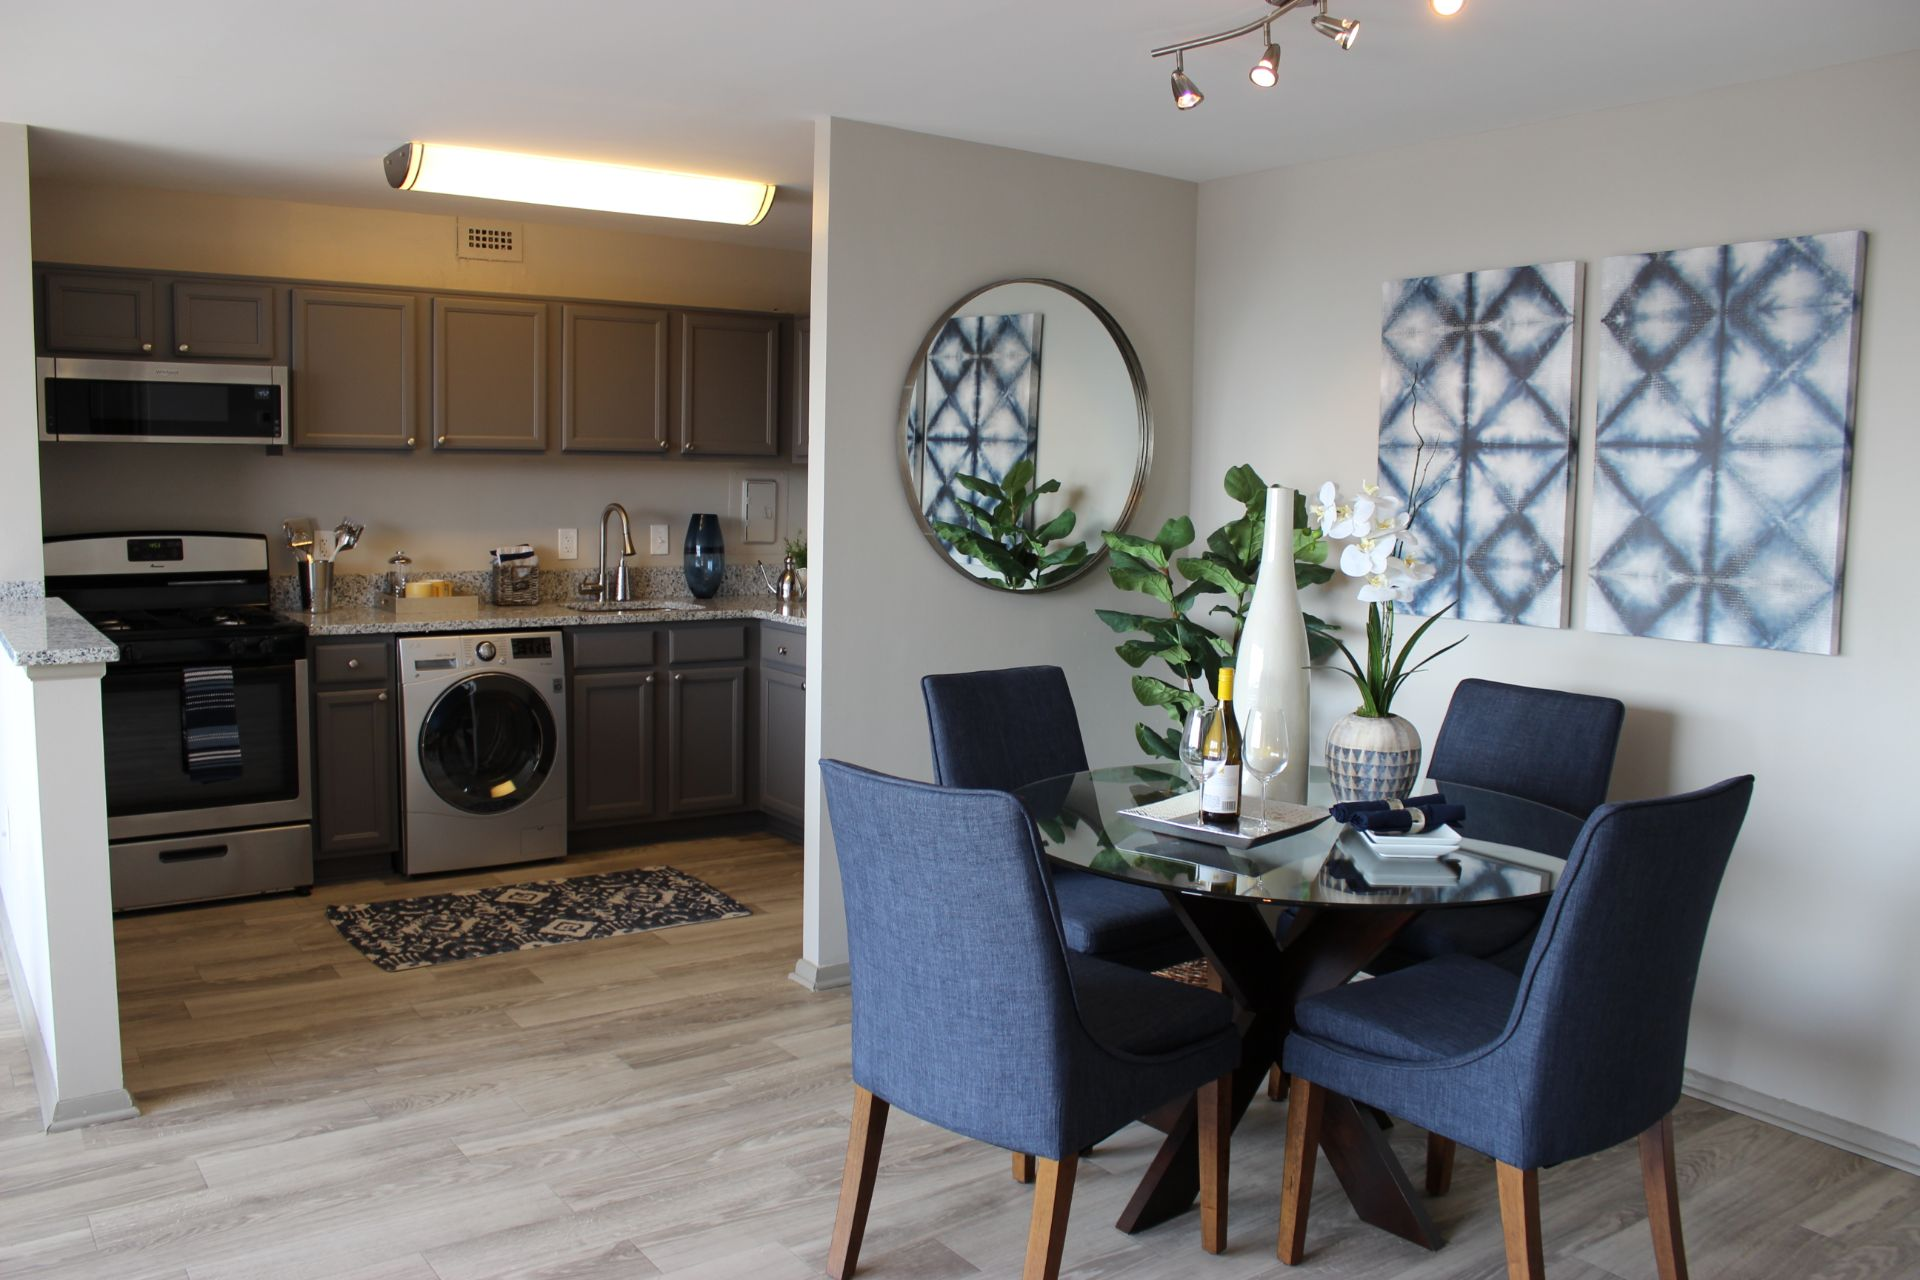 Apartment dining area and kitchen